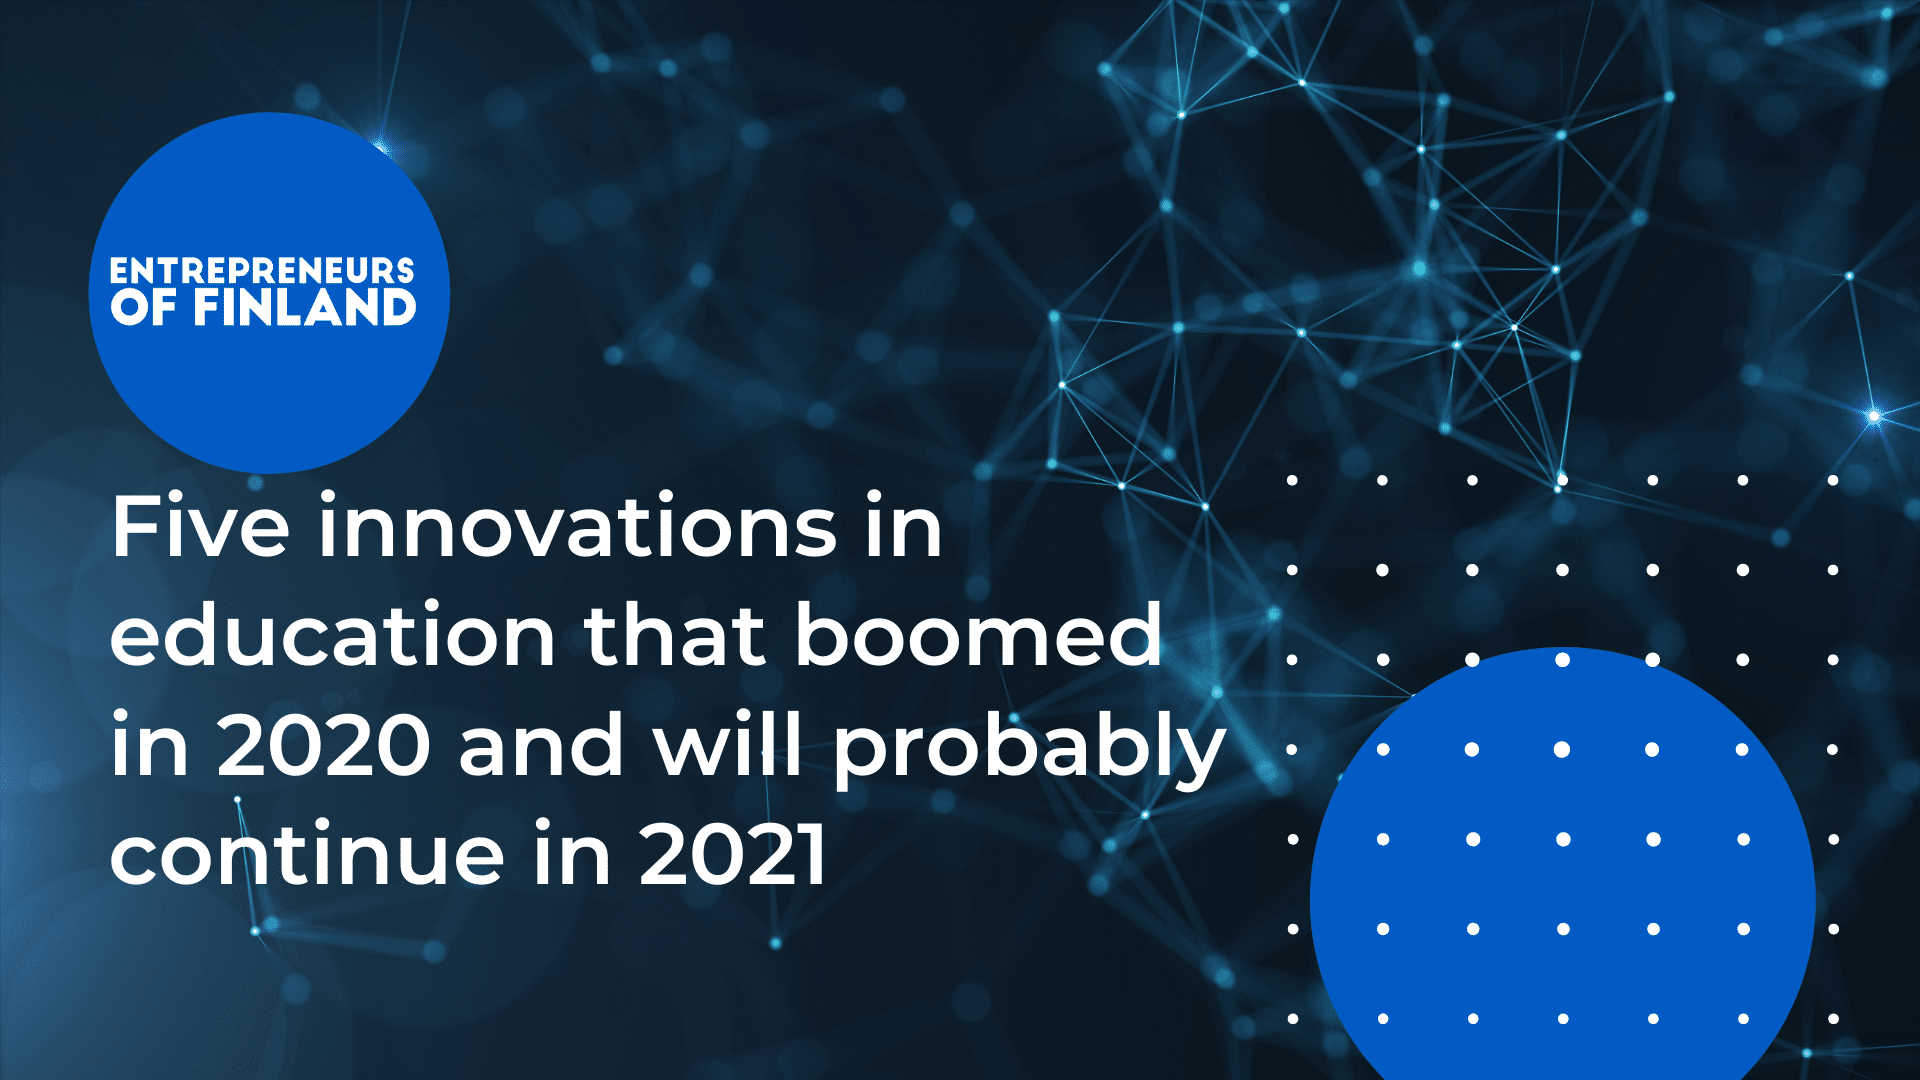 Five innovations in education that boomed in 2020 and will probably continue in 2021